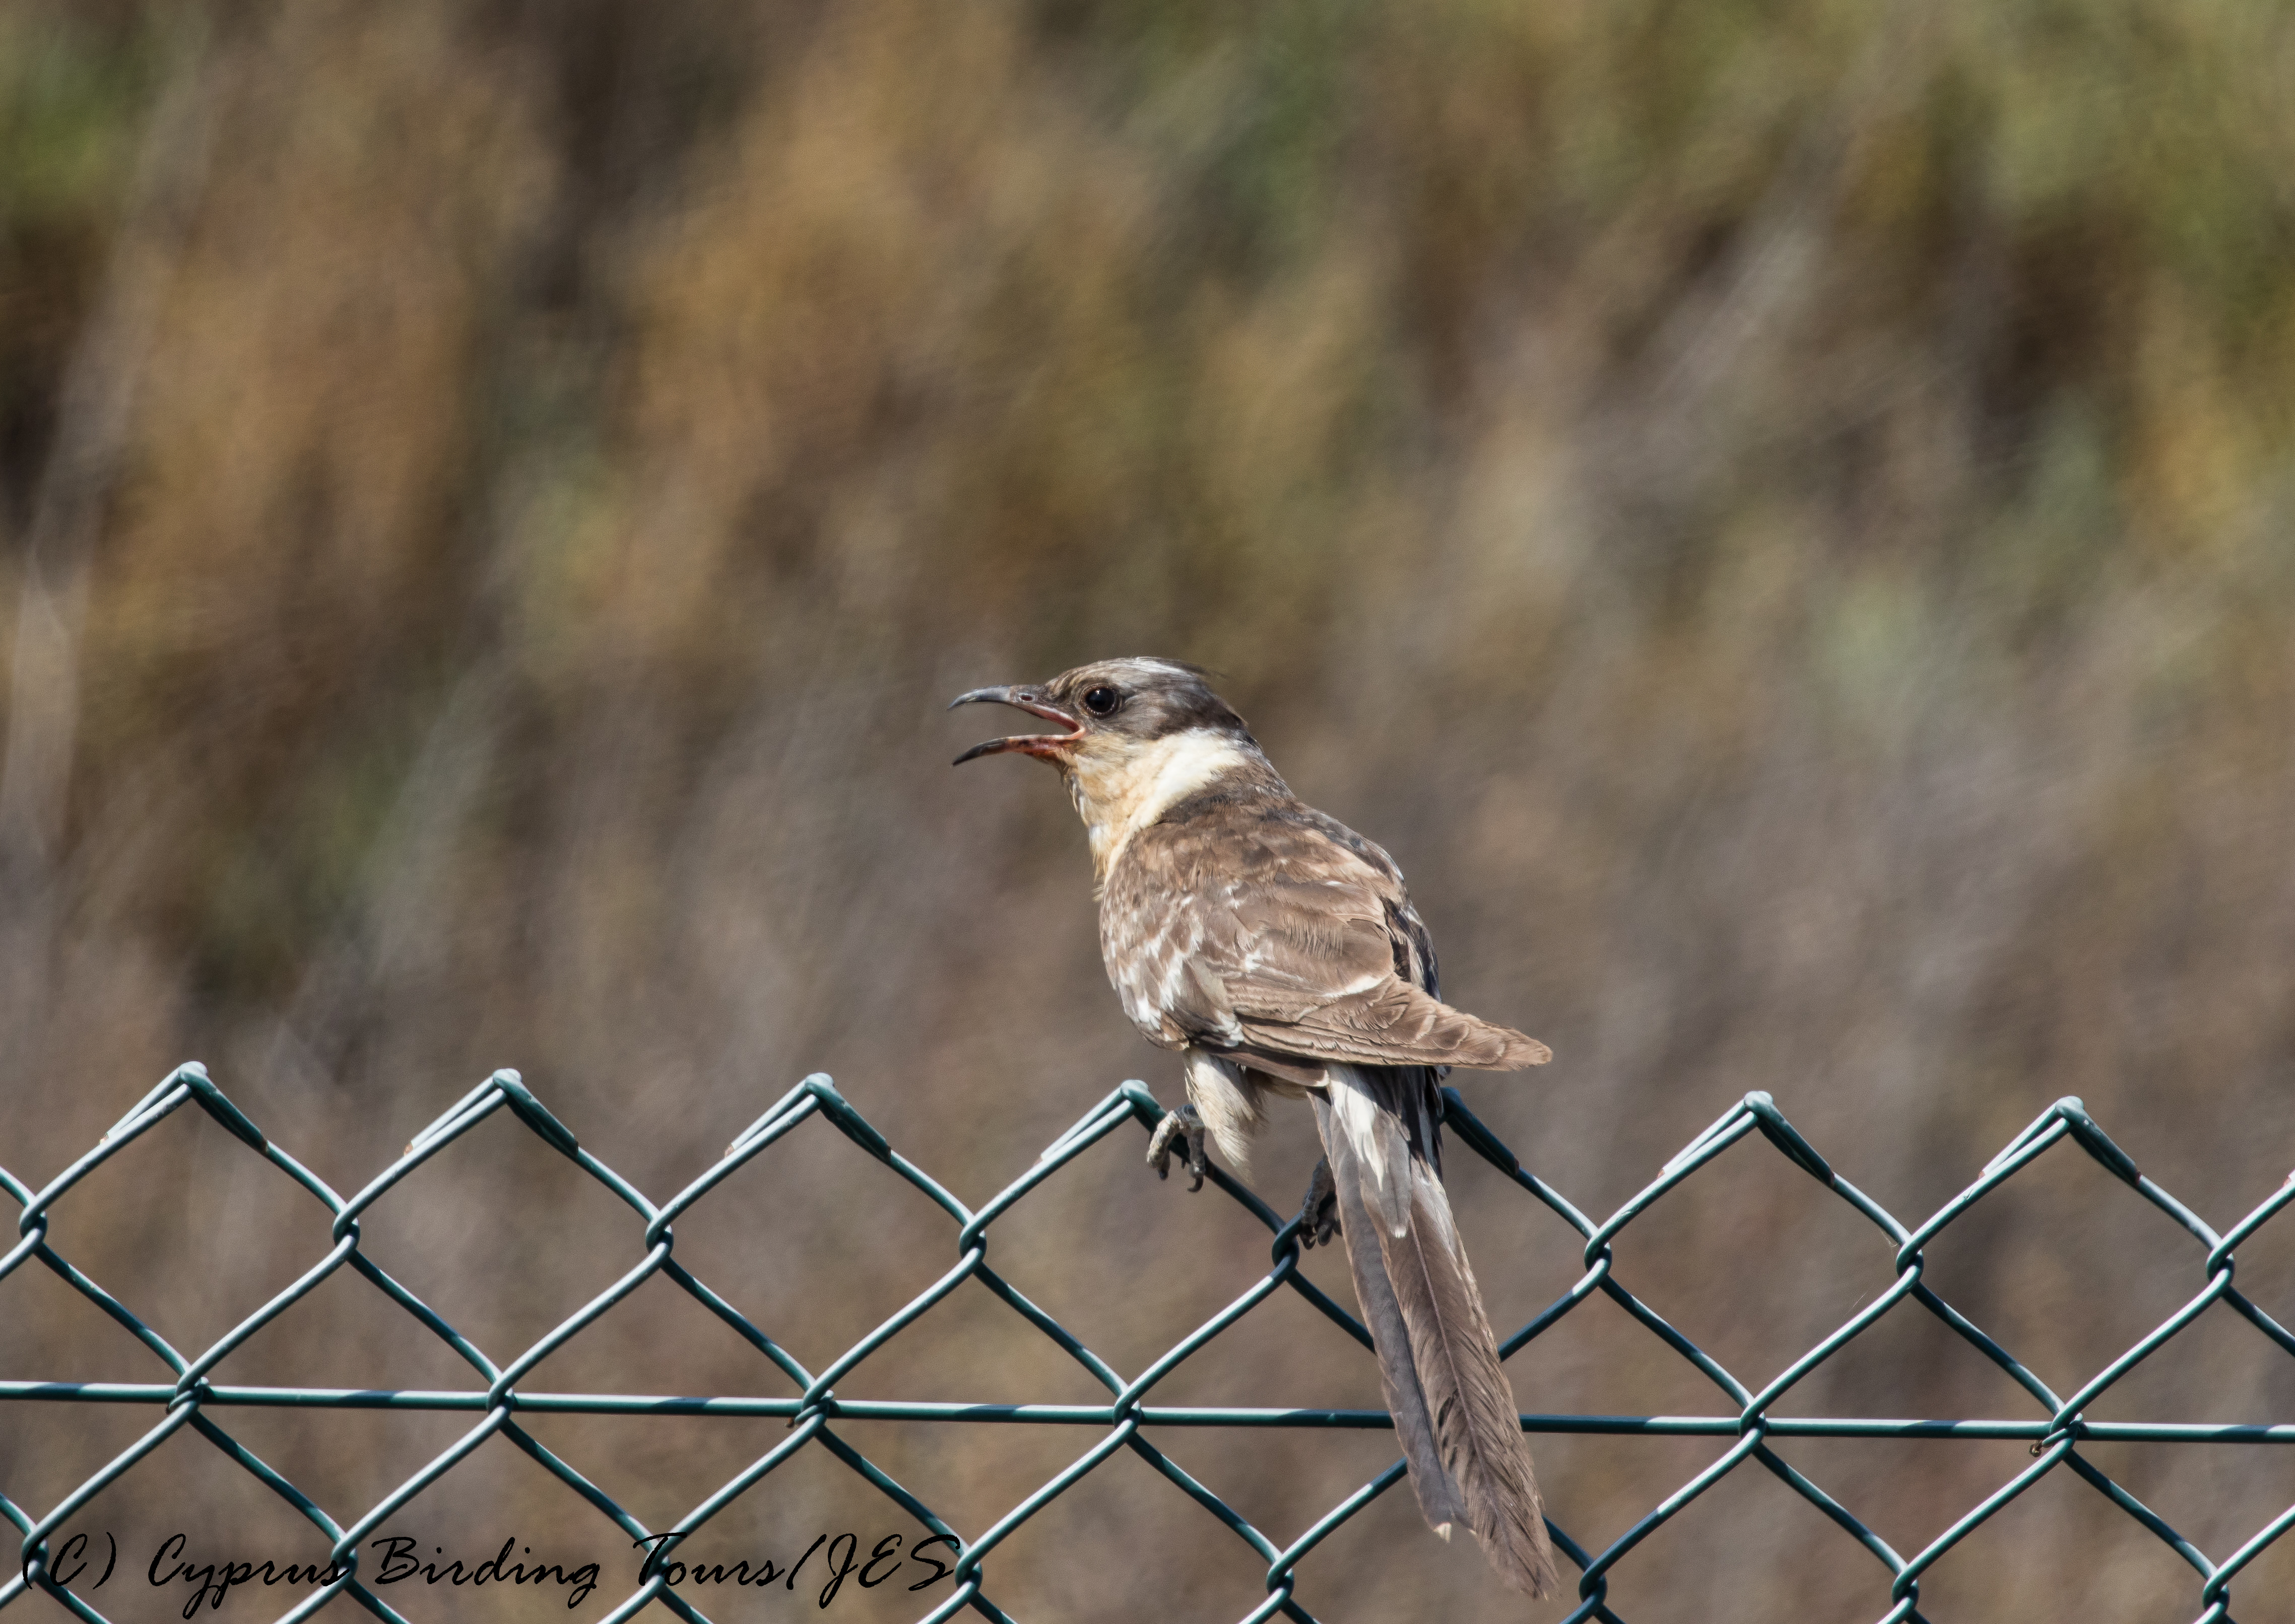 Great Spotted Cuckoo, Larnaca Sewage Works 30th June 2017 (c) Cyprus Birding Tours